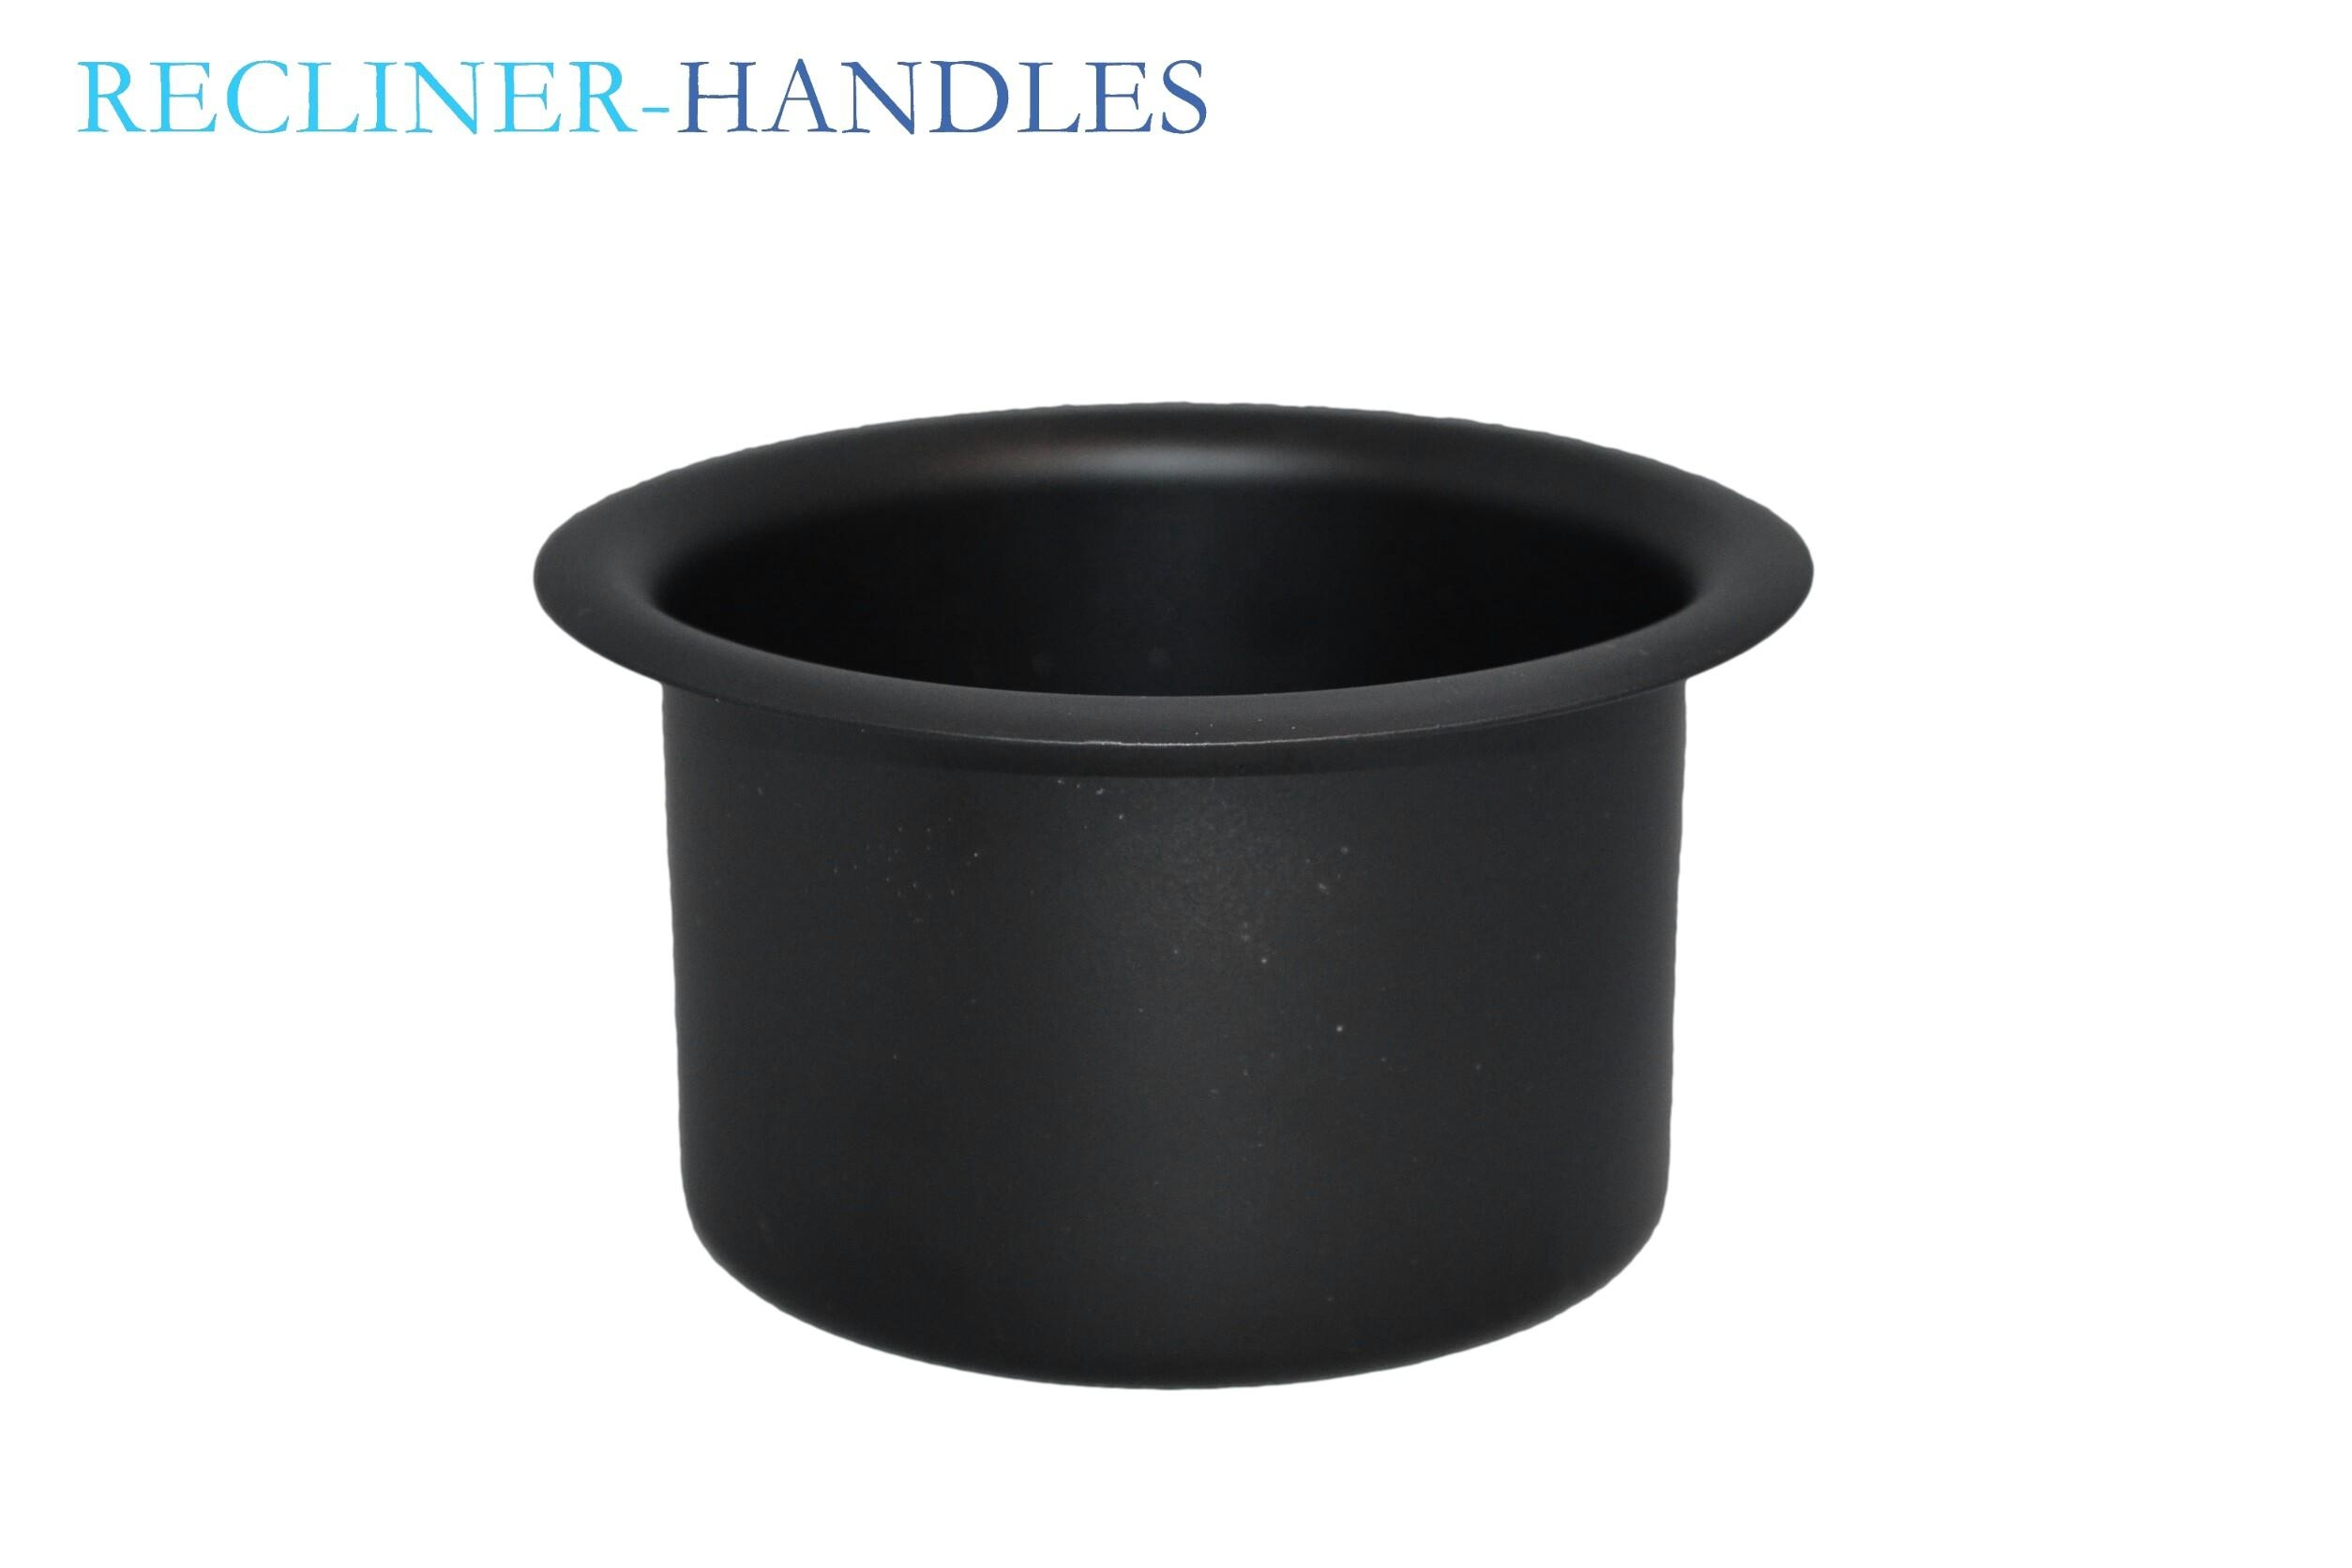 Cup Holders – Other Furniture Parts With Sofas With Drink Holder (View 19 of 20)